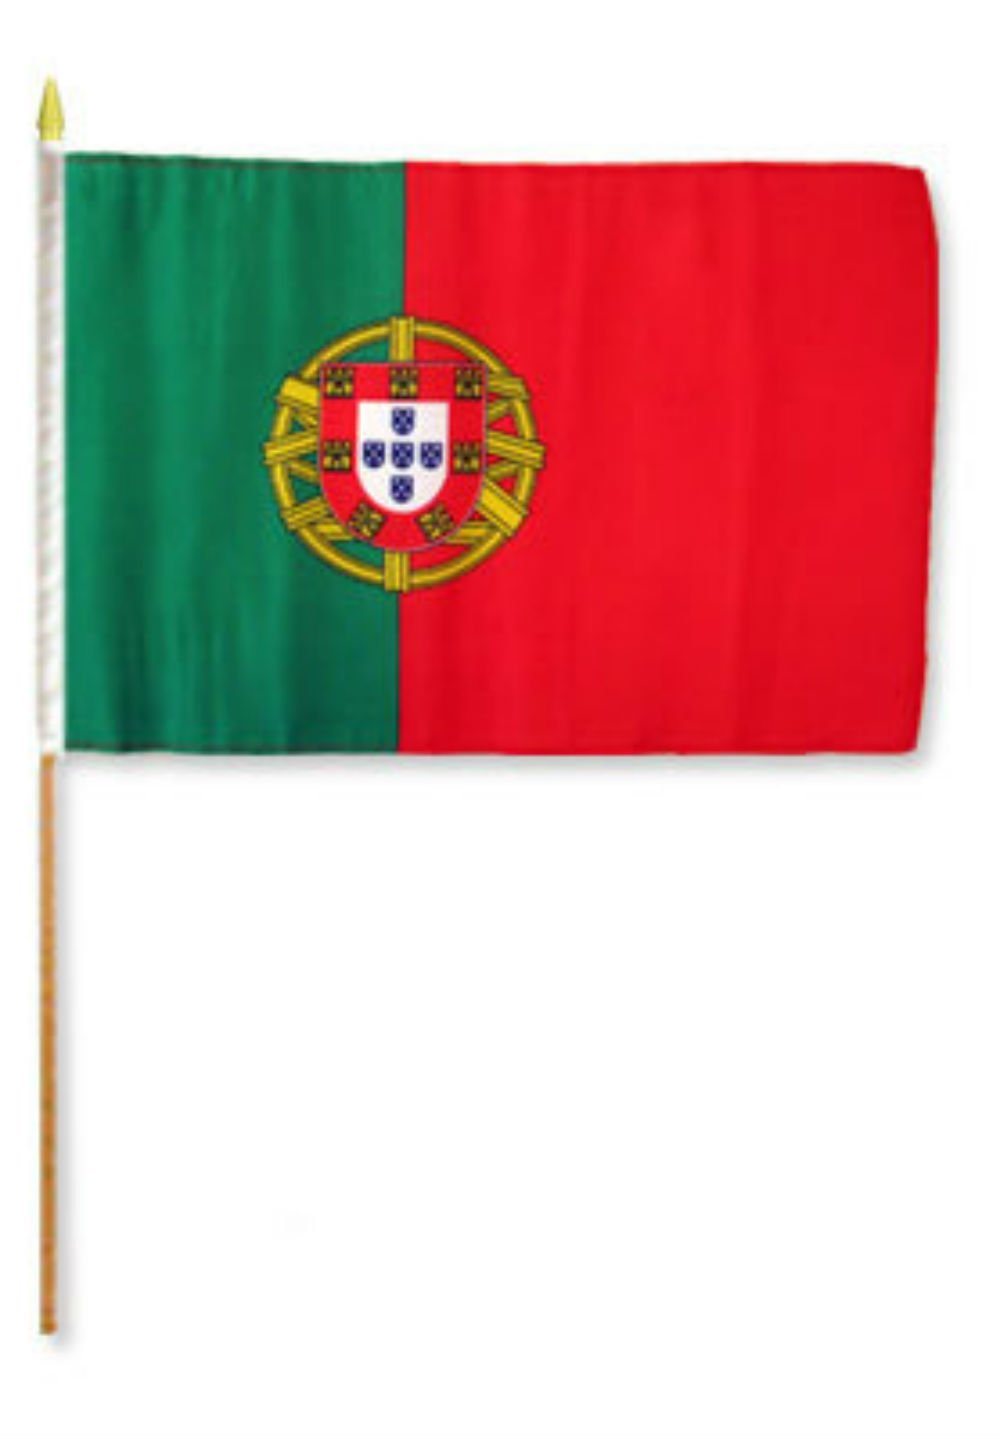 ALBATROS 12 inch x 18 inch (Pack of 12) Portugal Stick Flag with Wood Staff for Home and Parades, Official Party, All Weather Indoors Outdoors